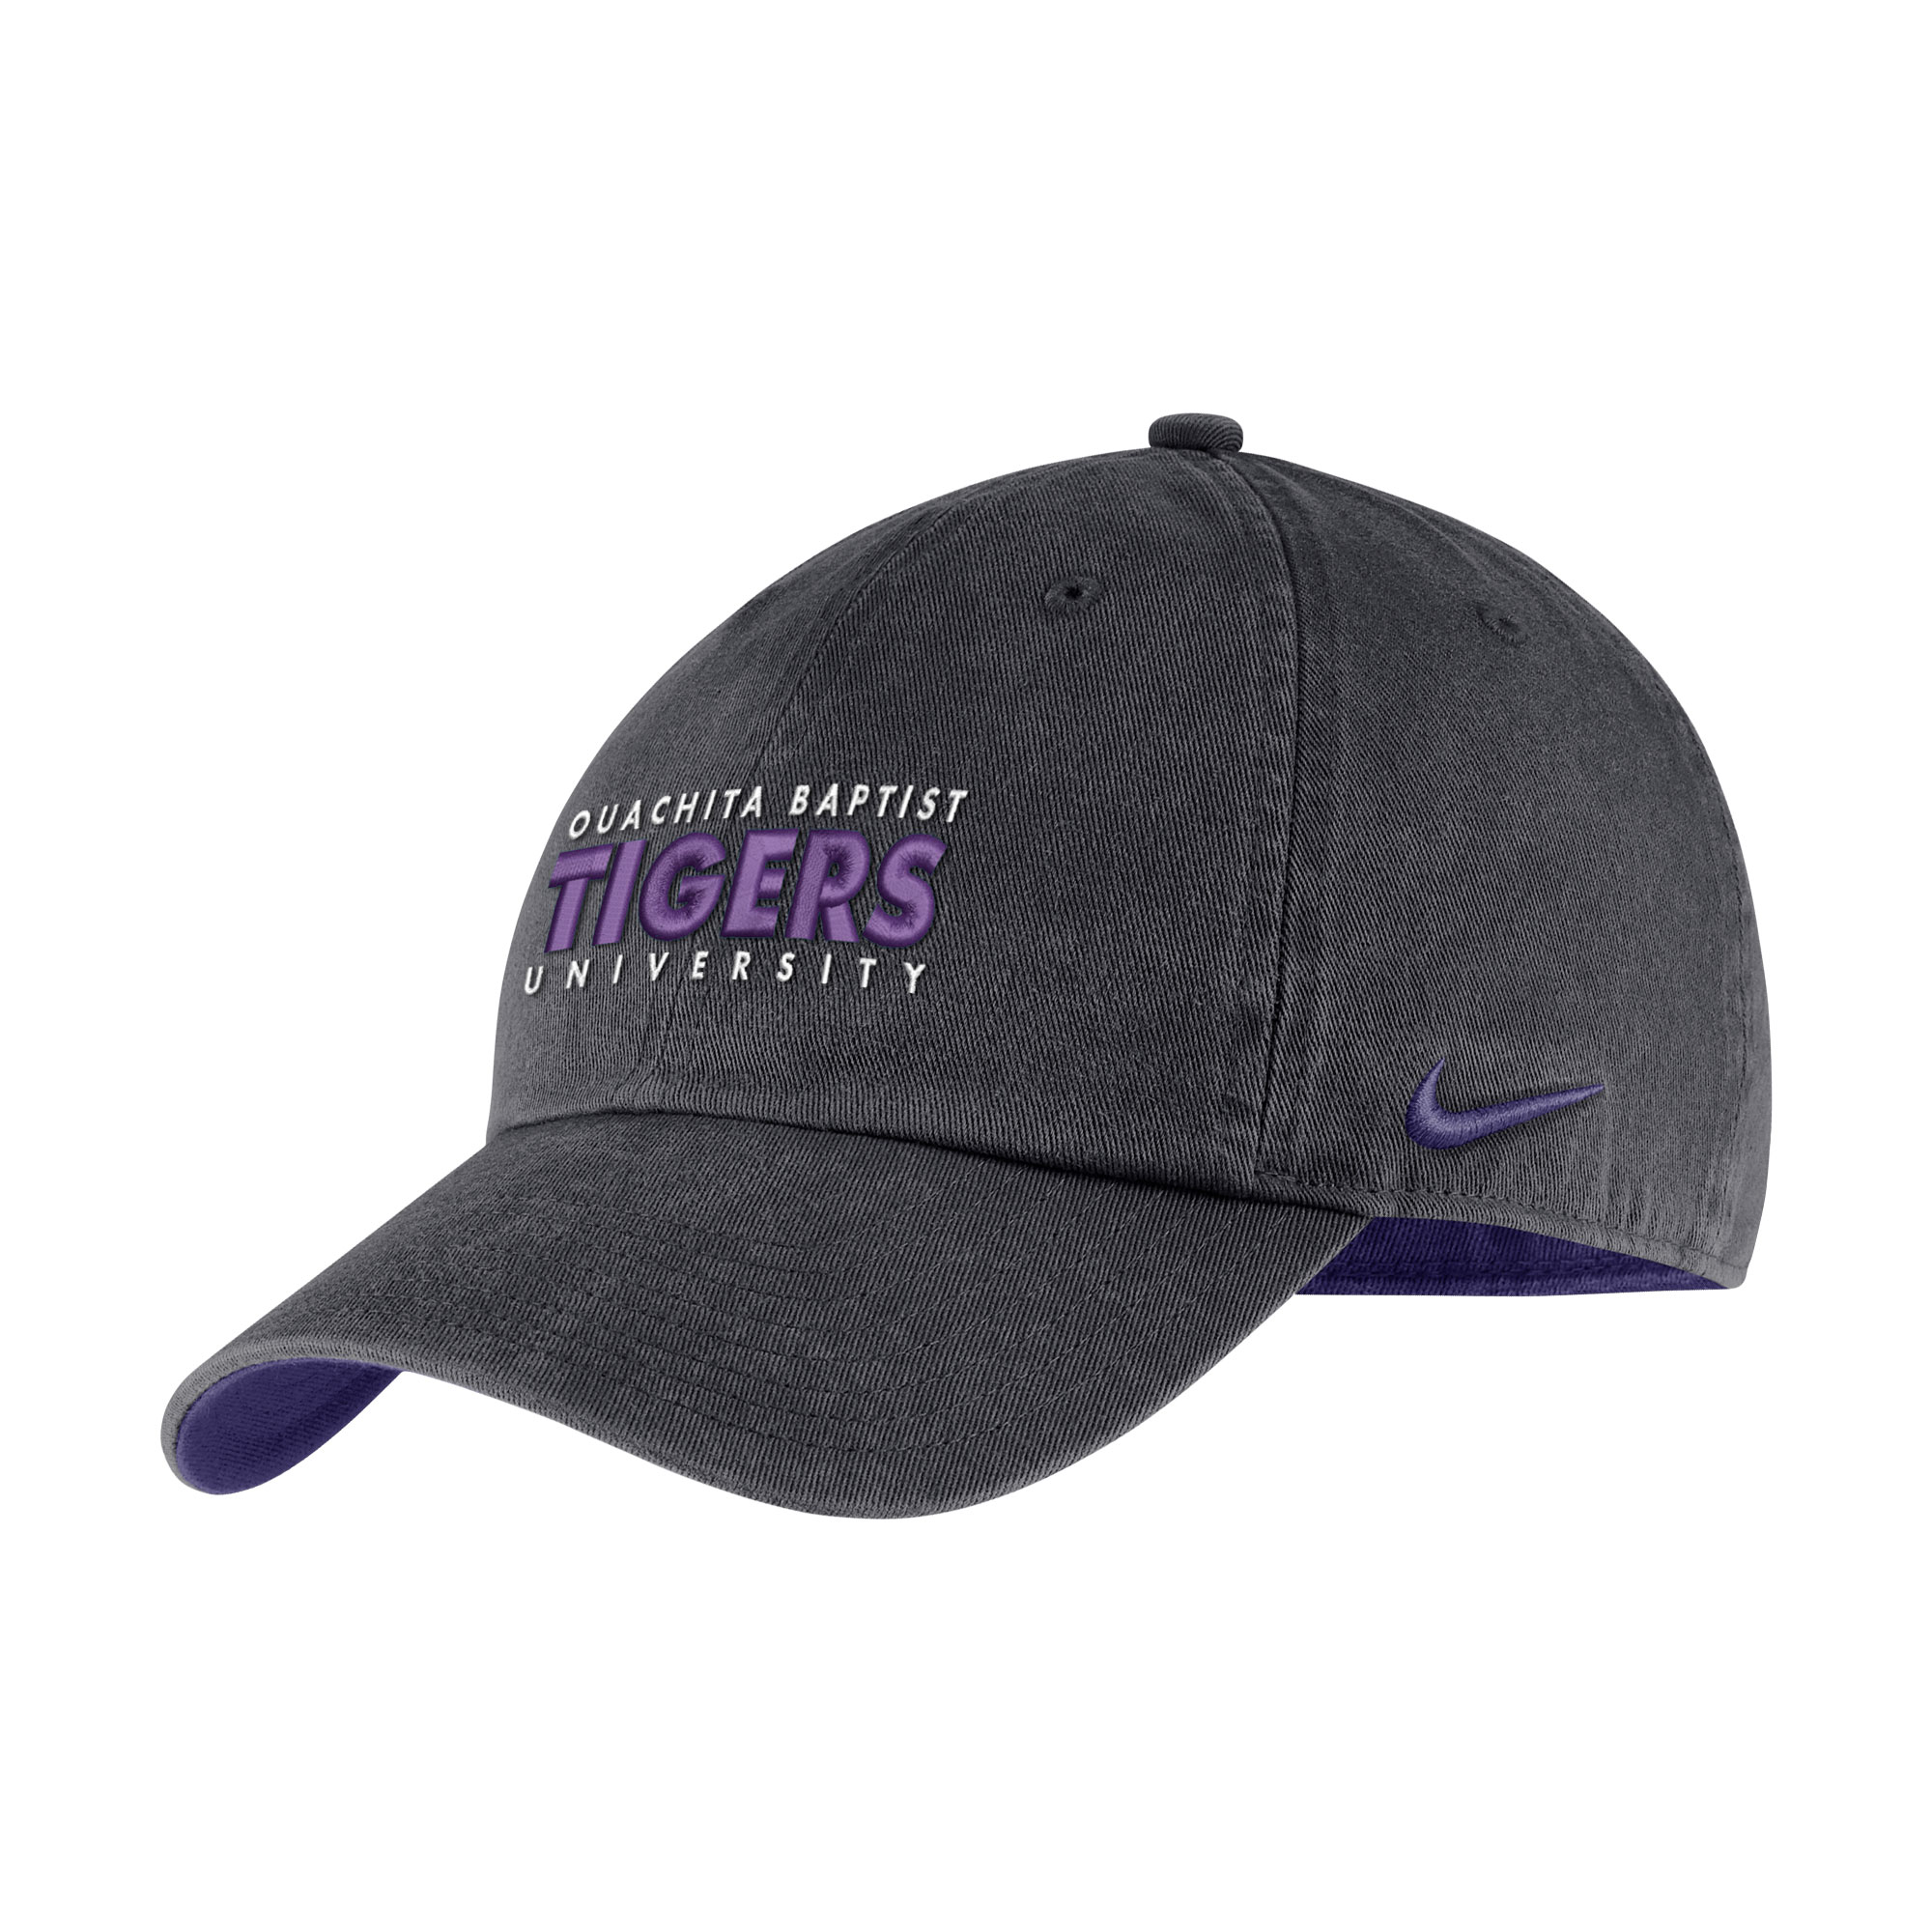 OUACHITA BAPTIST UNIVERSITY TIGERS NIKE CAP